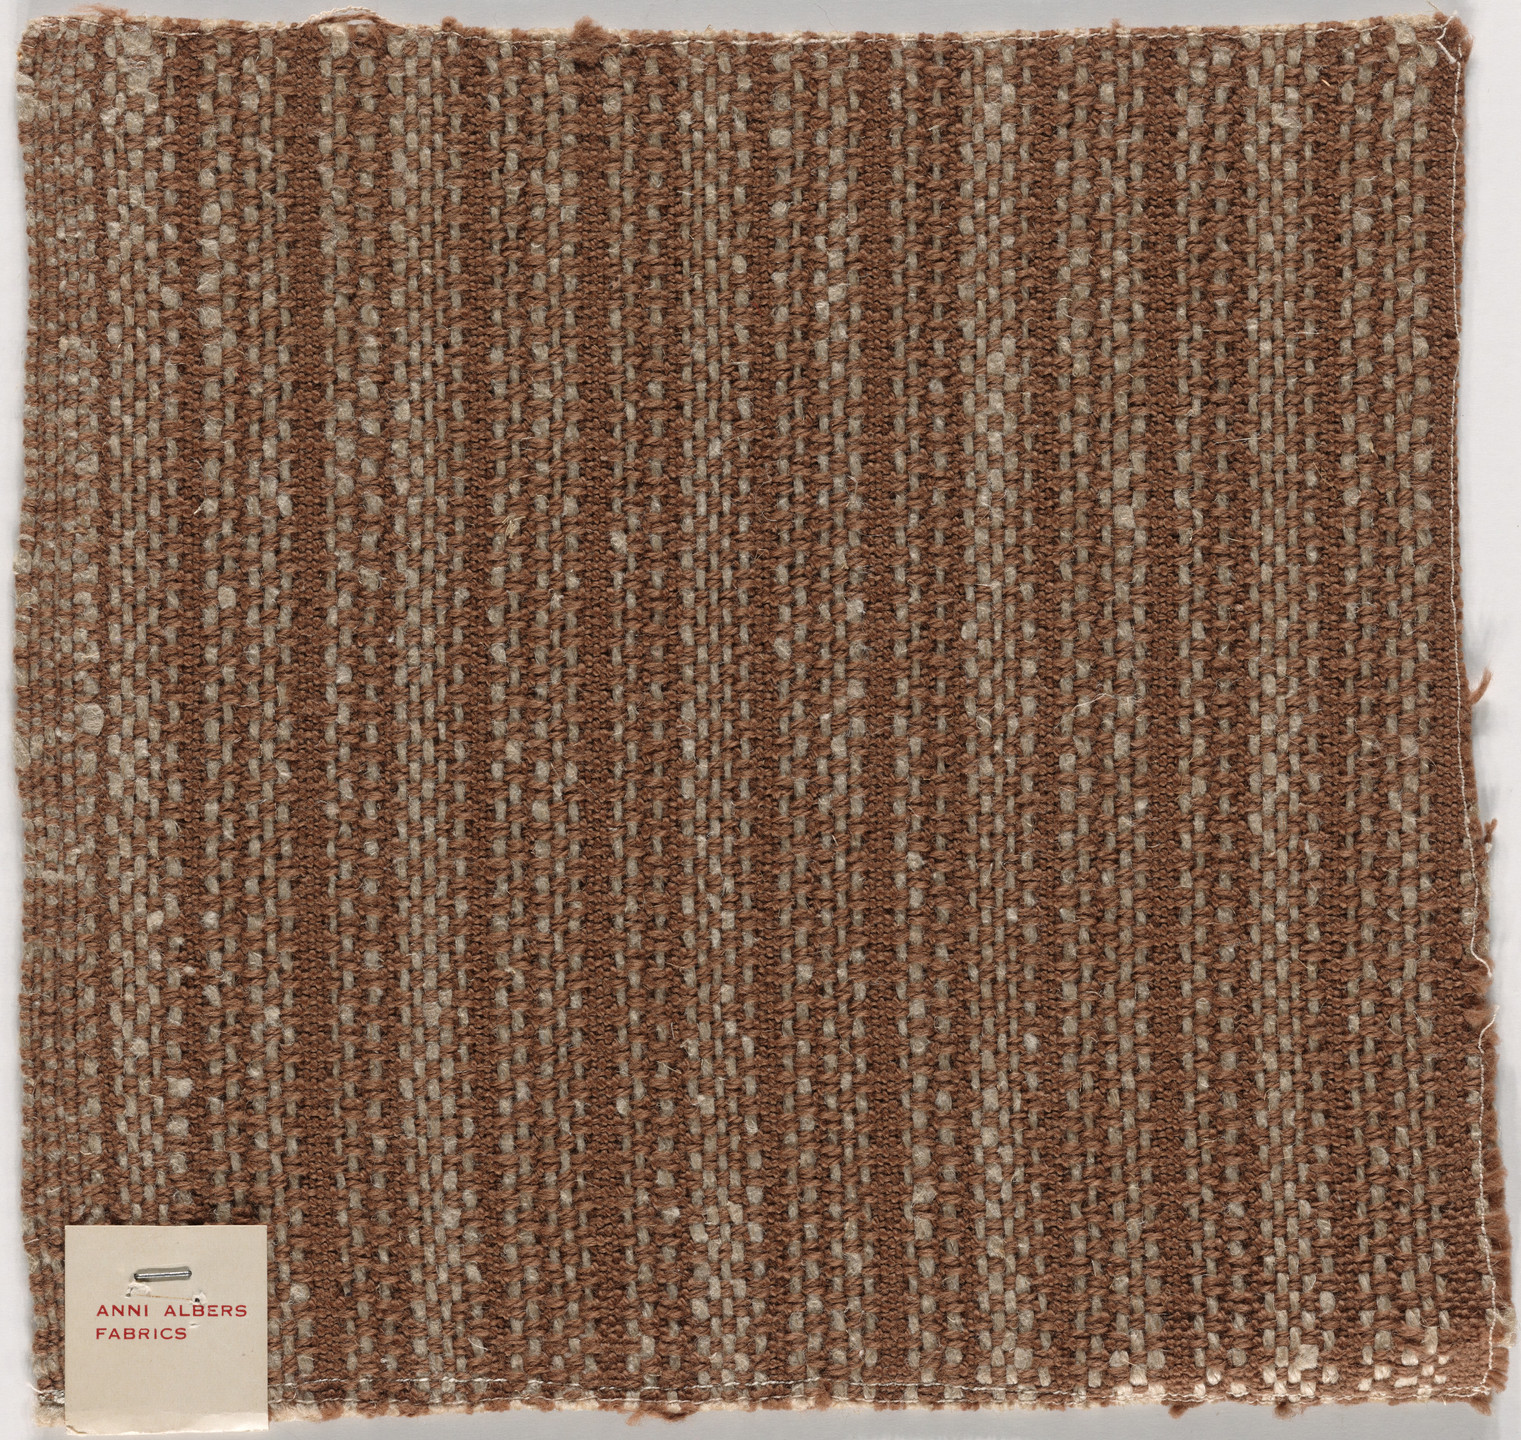 Anni Albers. Room-Dividing Curtain Material for Harvard Graduate Center Dormitory. 1950